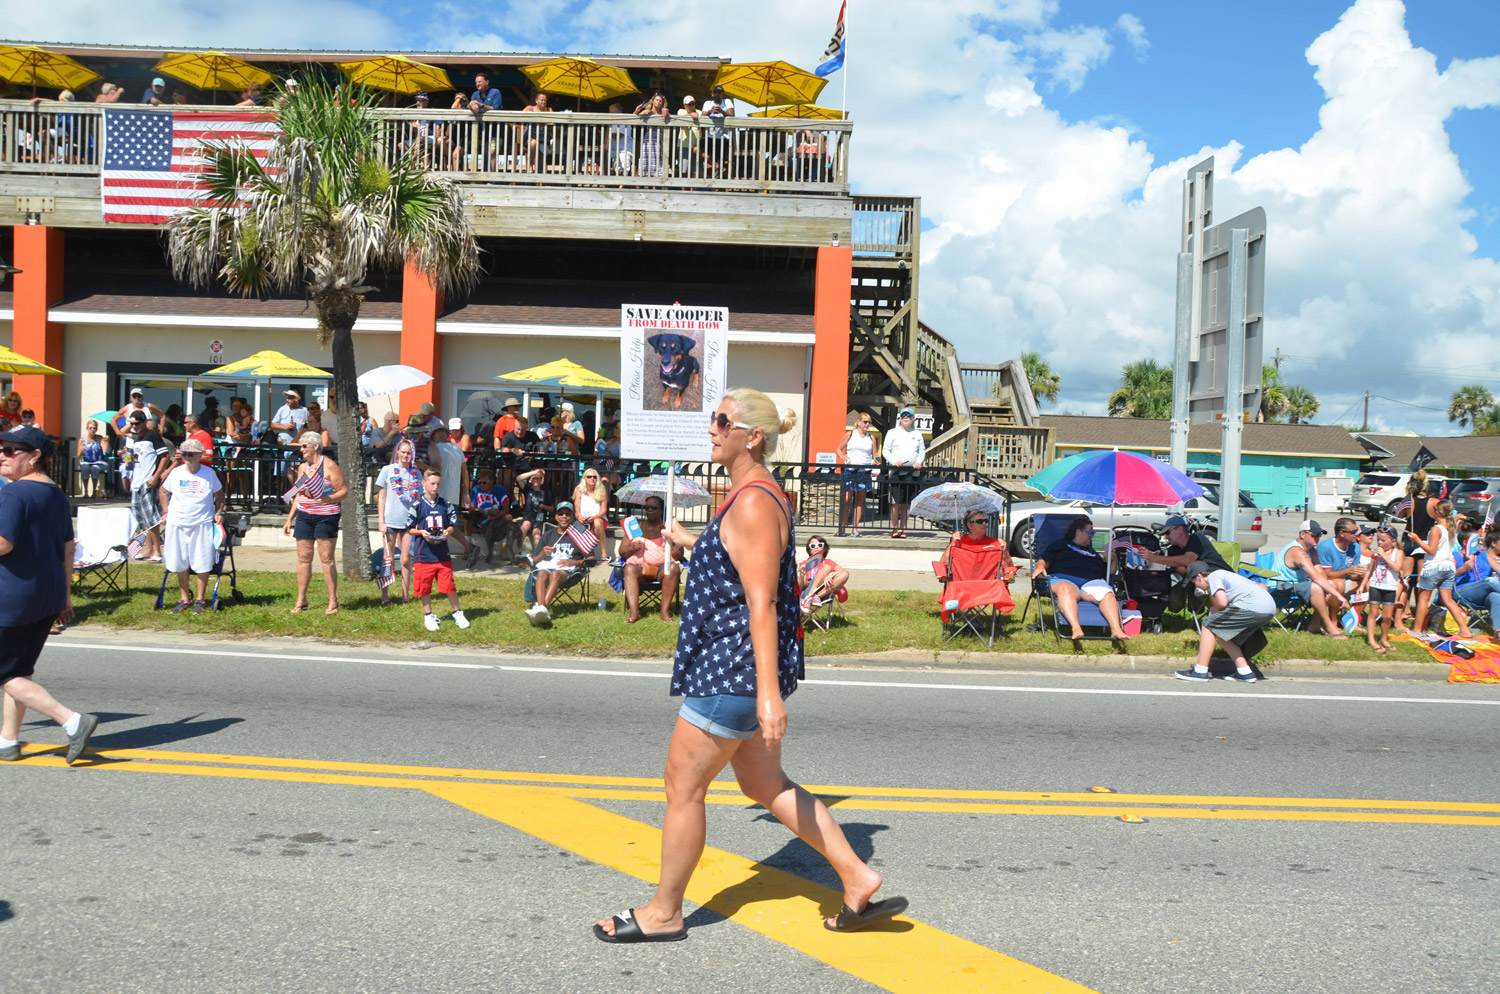 Cooper the dog has drawn a following from advocates who'd rather see the dog sent to a shelter for dangerous dogs on the state's west coast. They demonstrated on his behalf during Flagler Beach's July 4 parade. Click on the image for larger view. (© FlaglerLive)